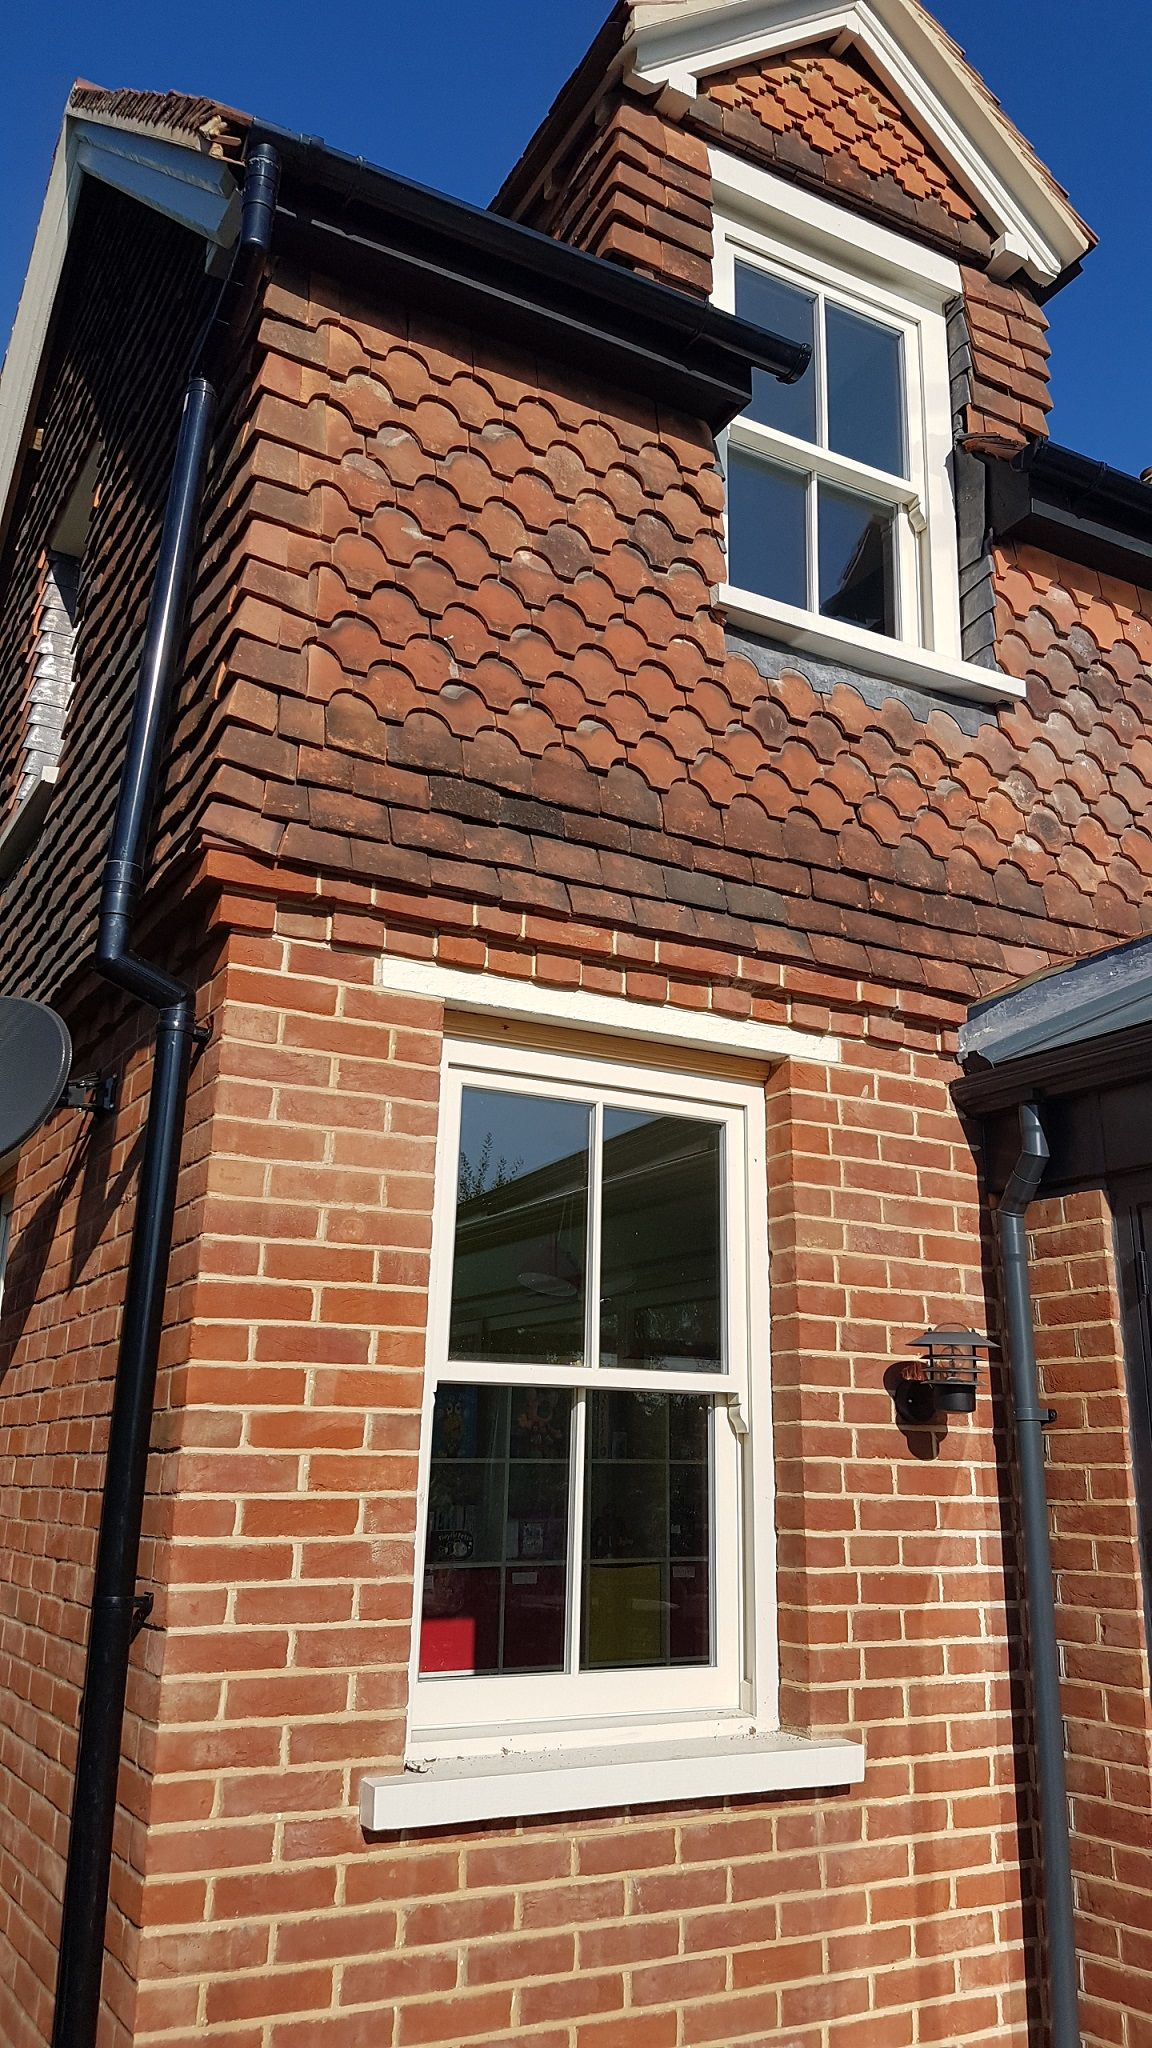 Seven Oaks 2 over 2 sash windows, supplied by Timber